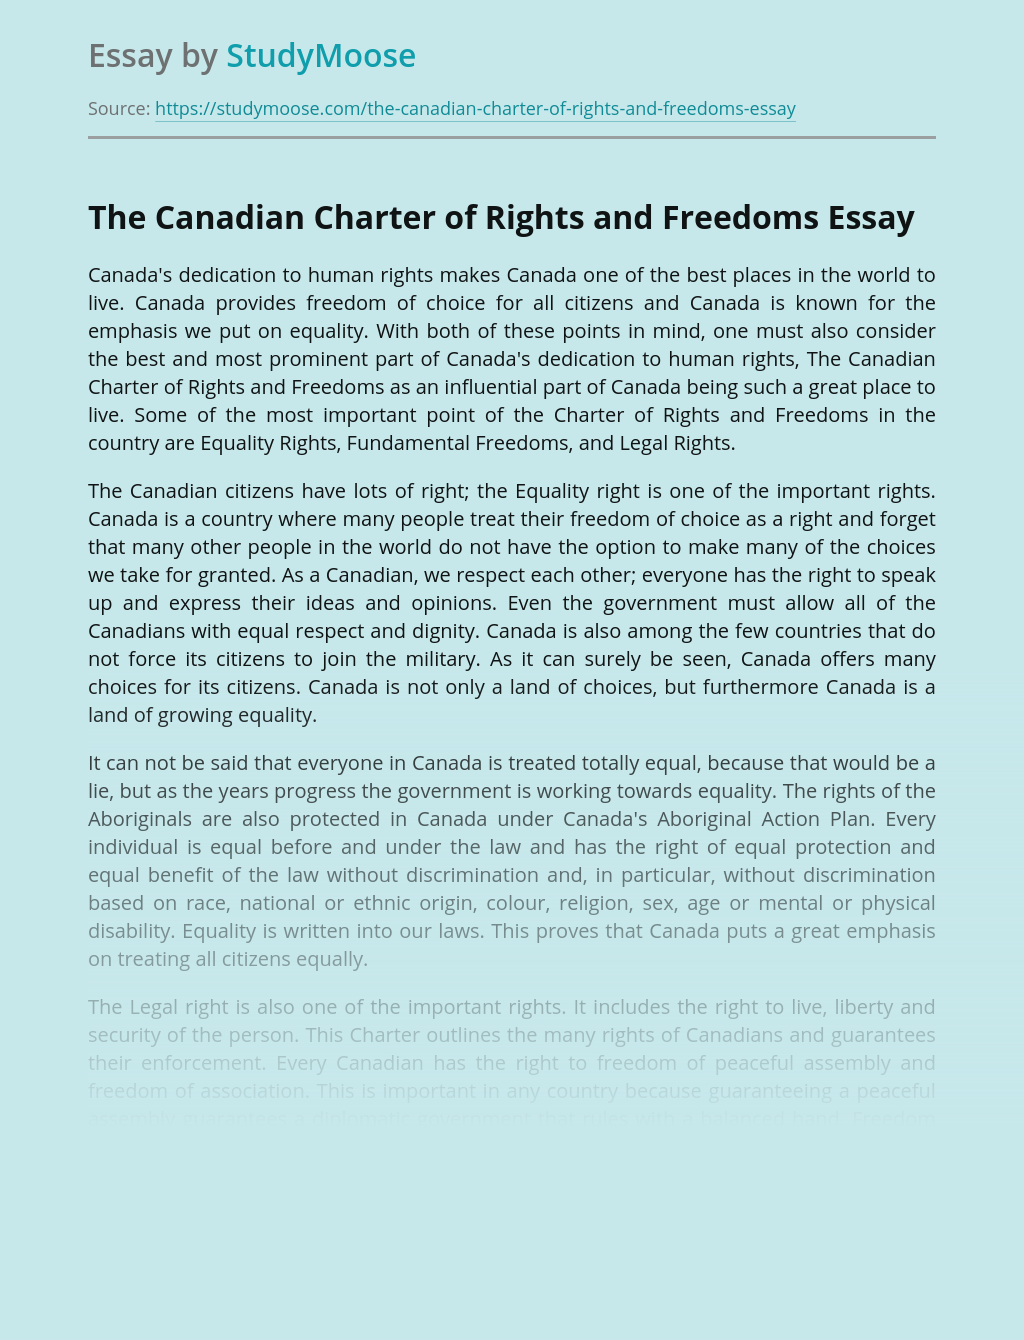 rights and freedoms essay